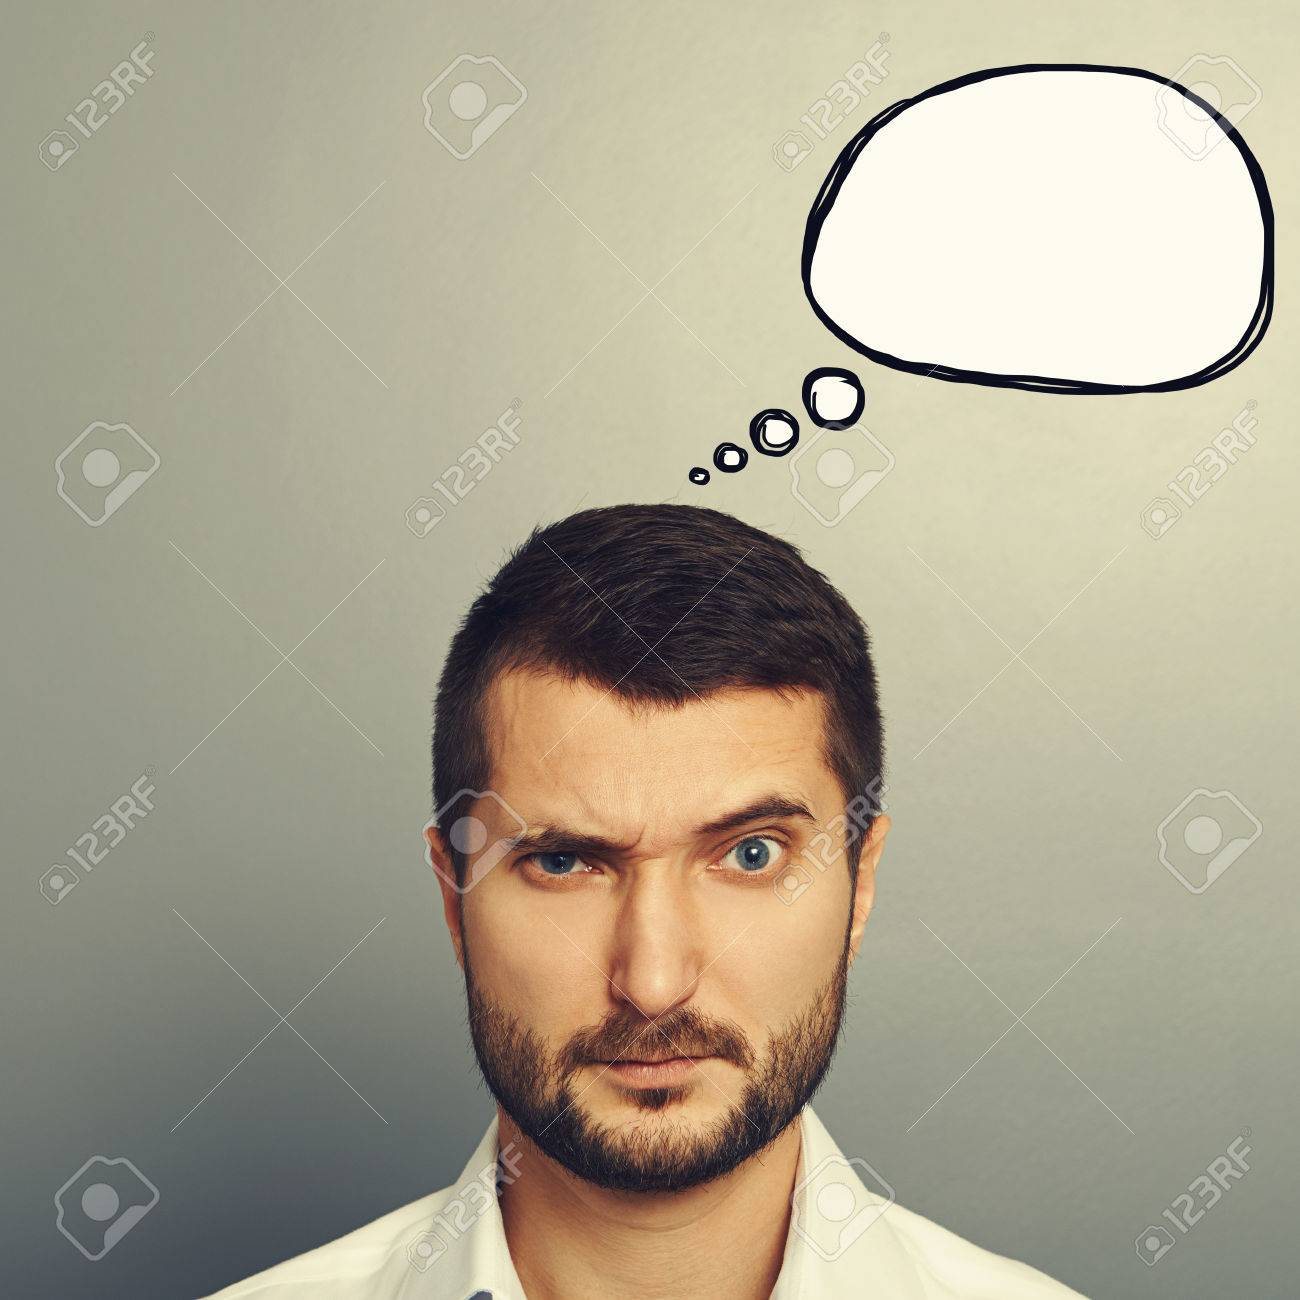 pensive man with empty speech bubble looking at camera over grey background Stock Photo - 30834582